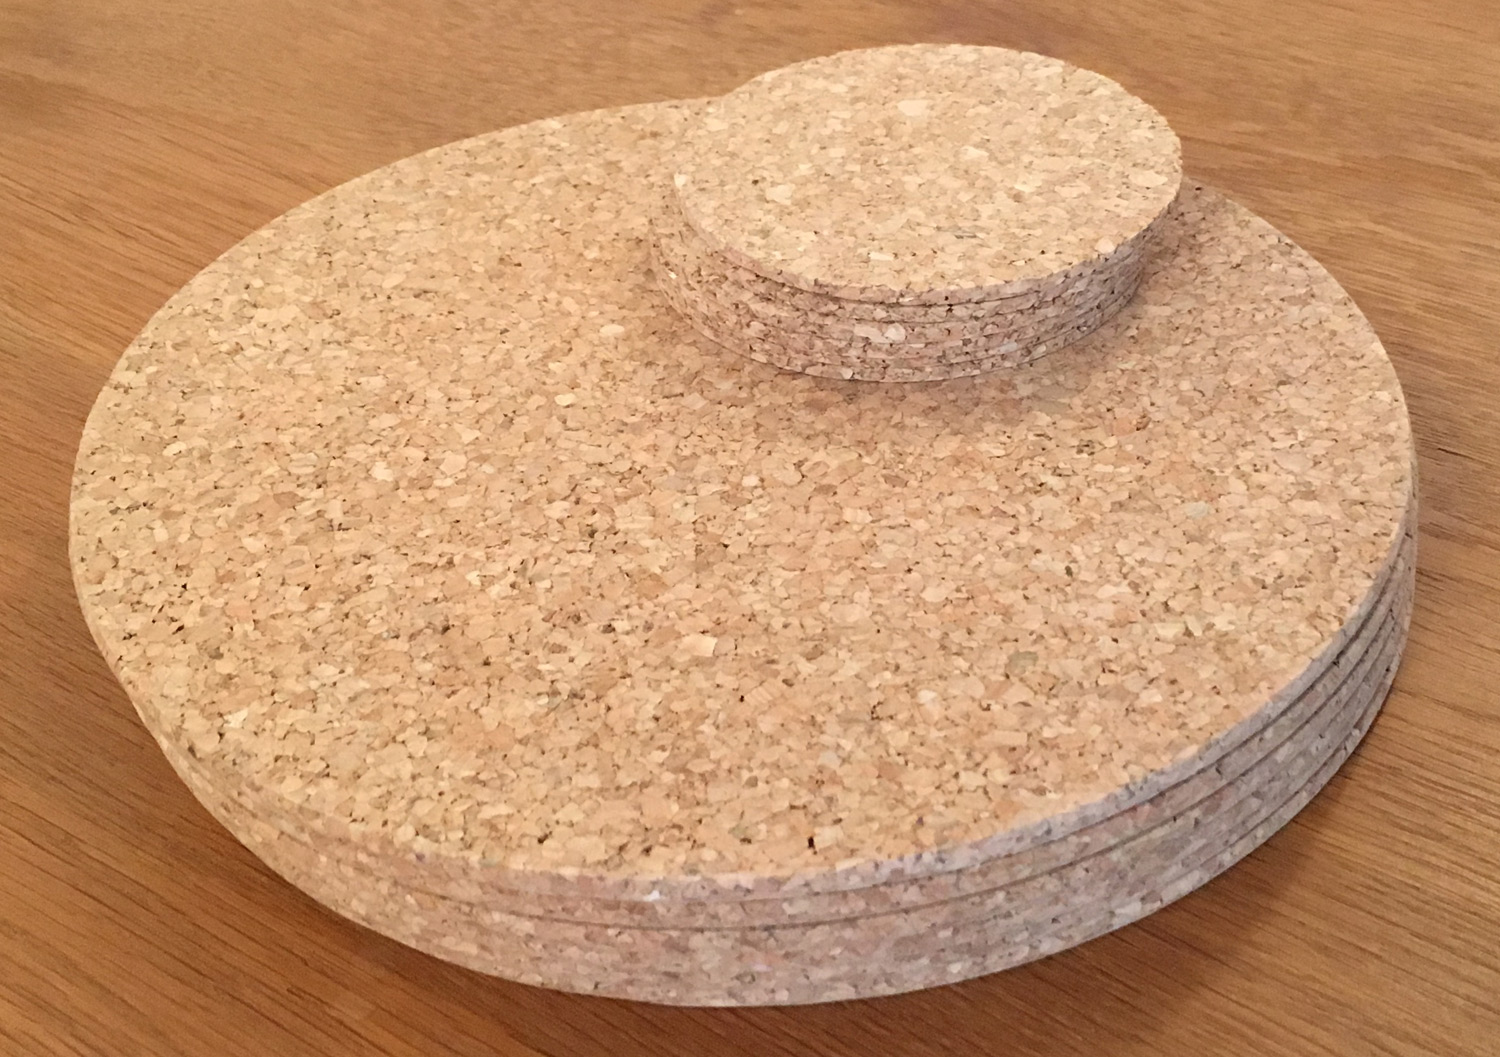 Diy Table Coasters Vintage Round Cork Placemats Drinks Coasters Kitchen